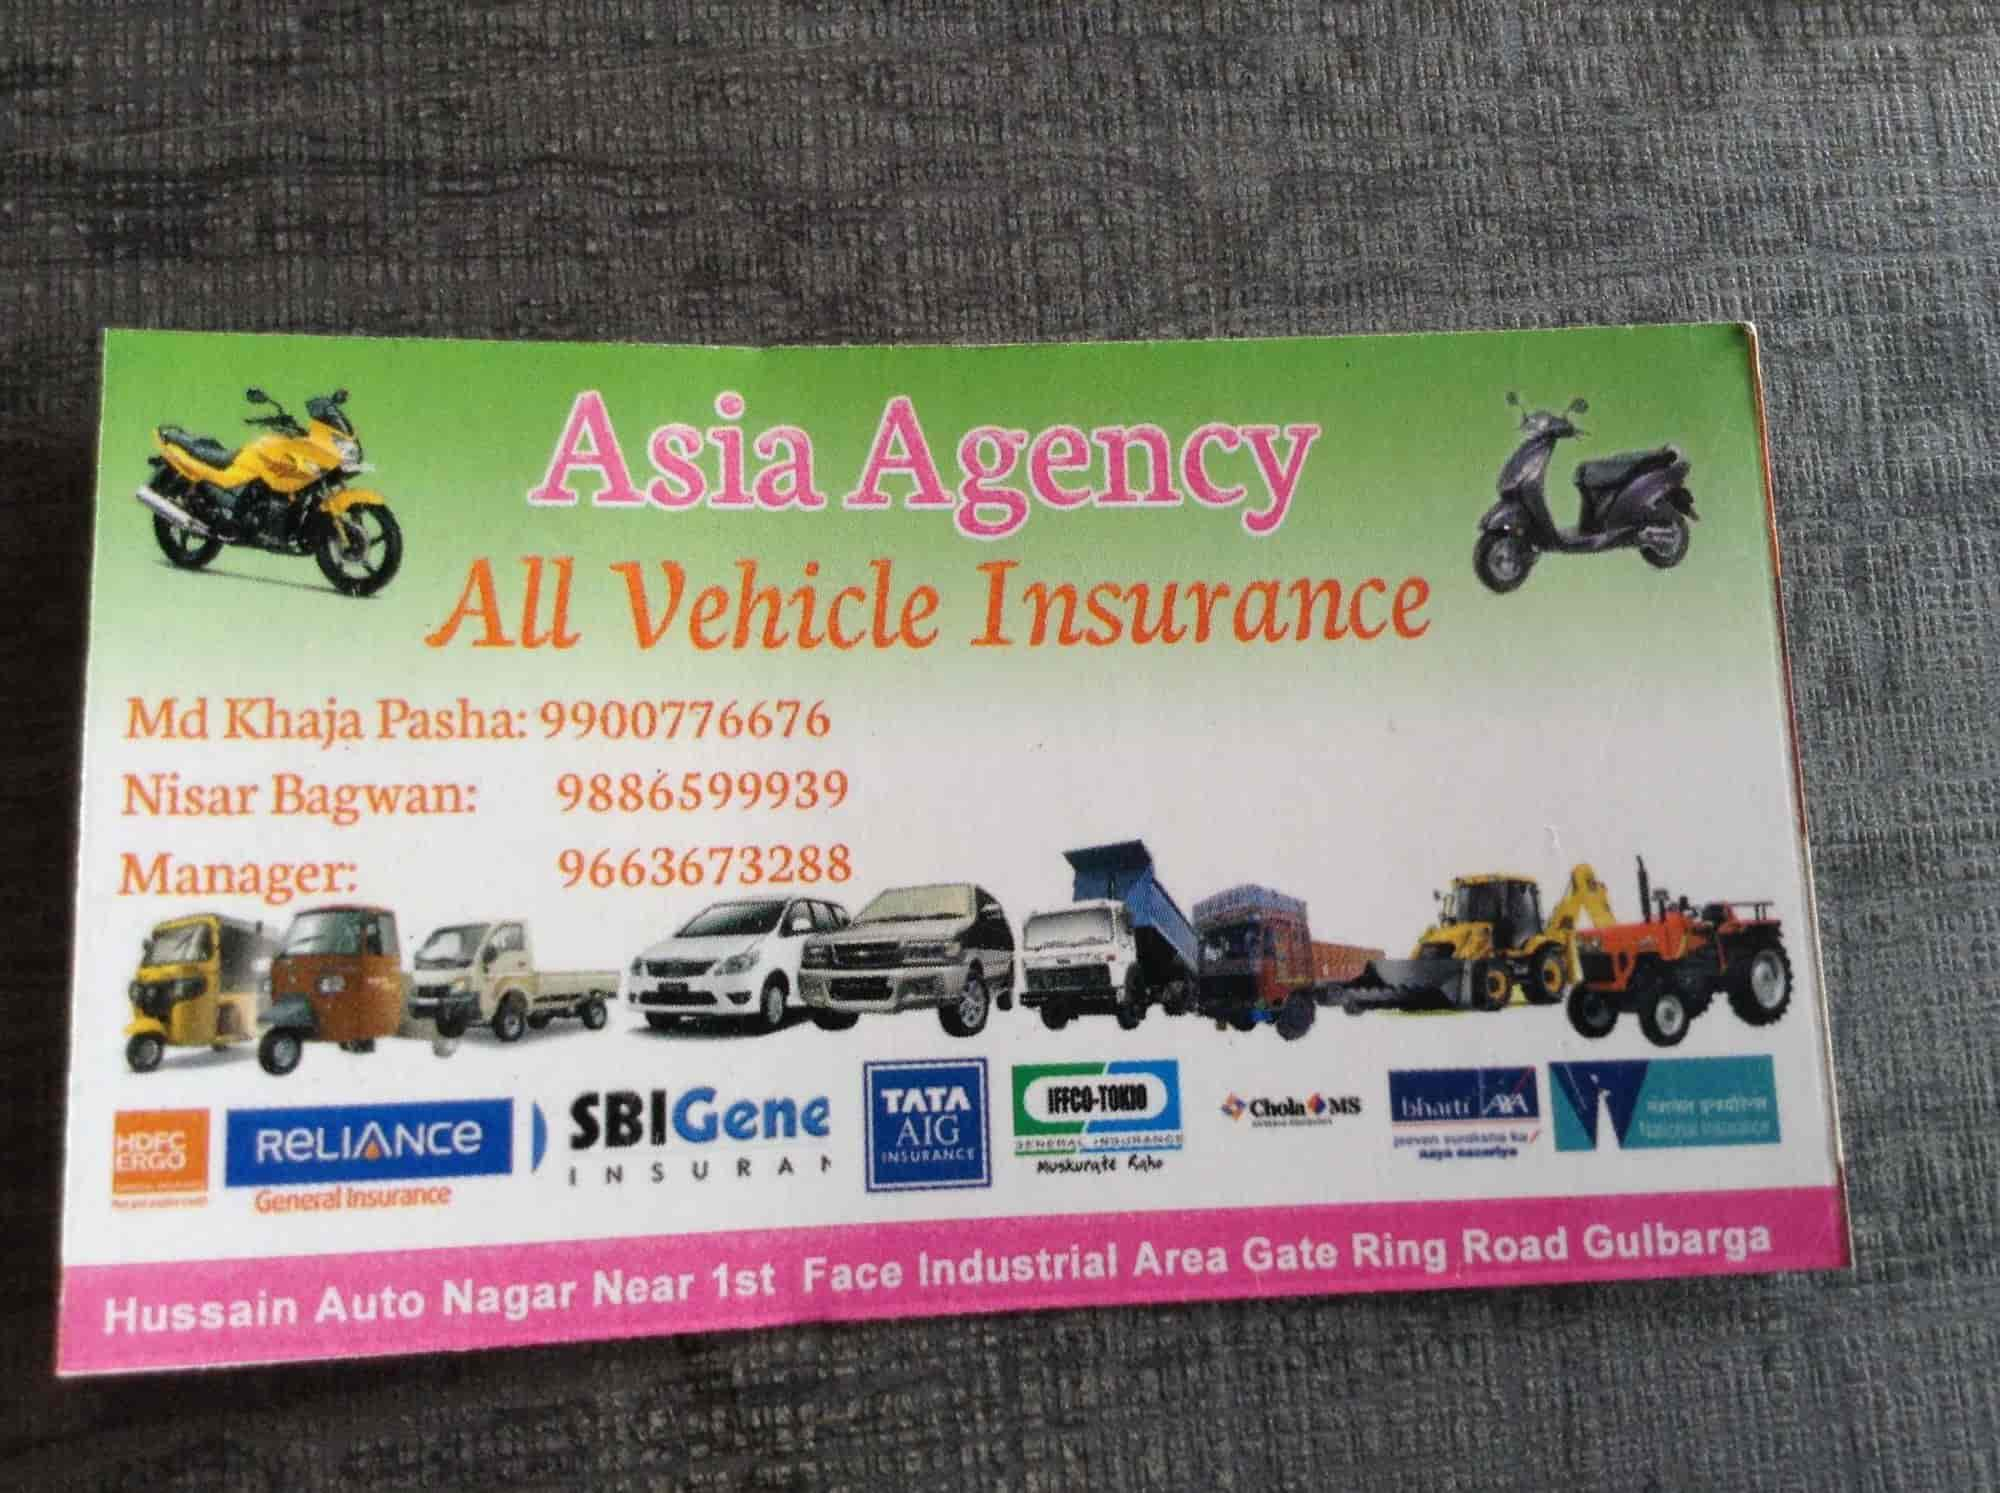 Asia Agency Insurance - Vehicle Insurance Agents in Gulbarga - Justdial